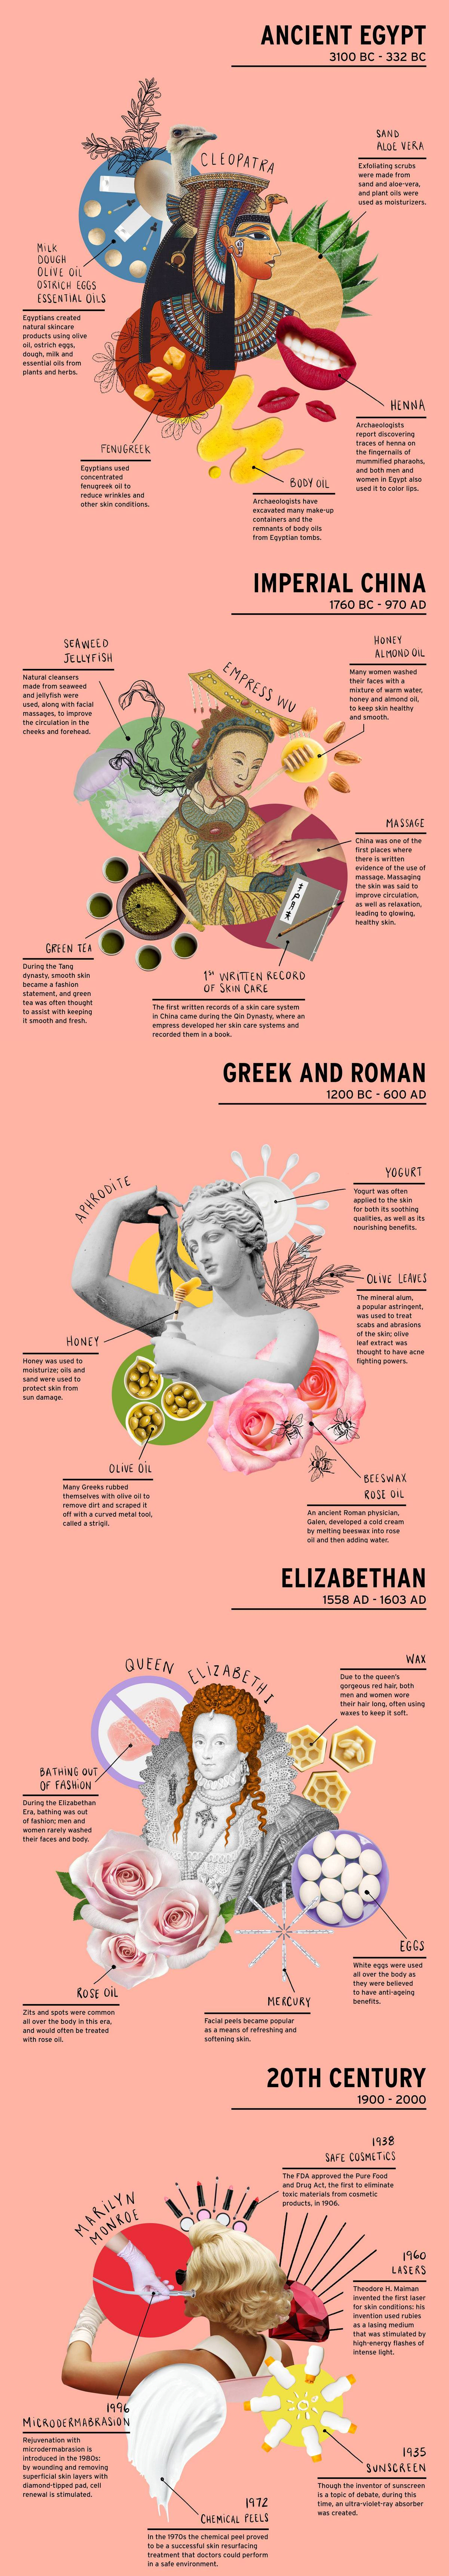 Body-Care-Through-the-Ages-infographic-plaza